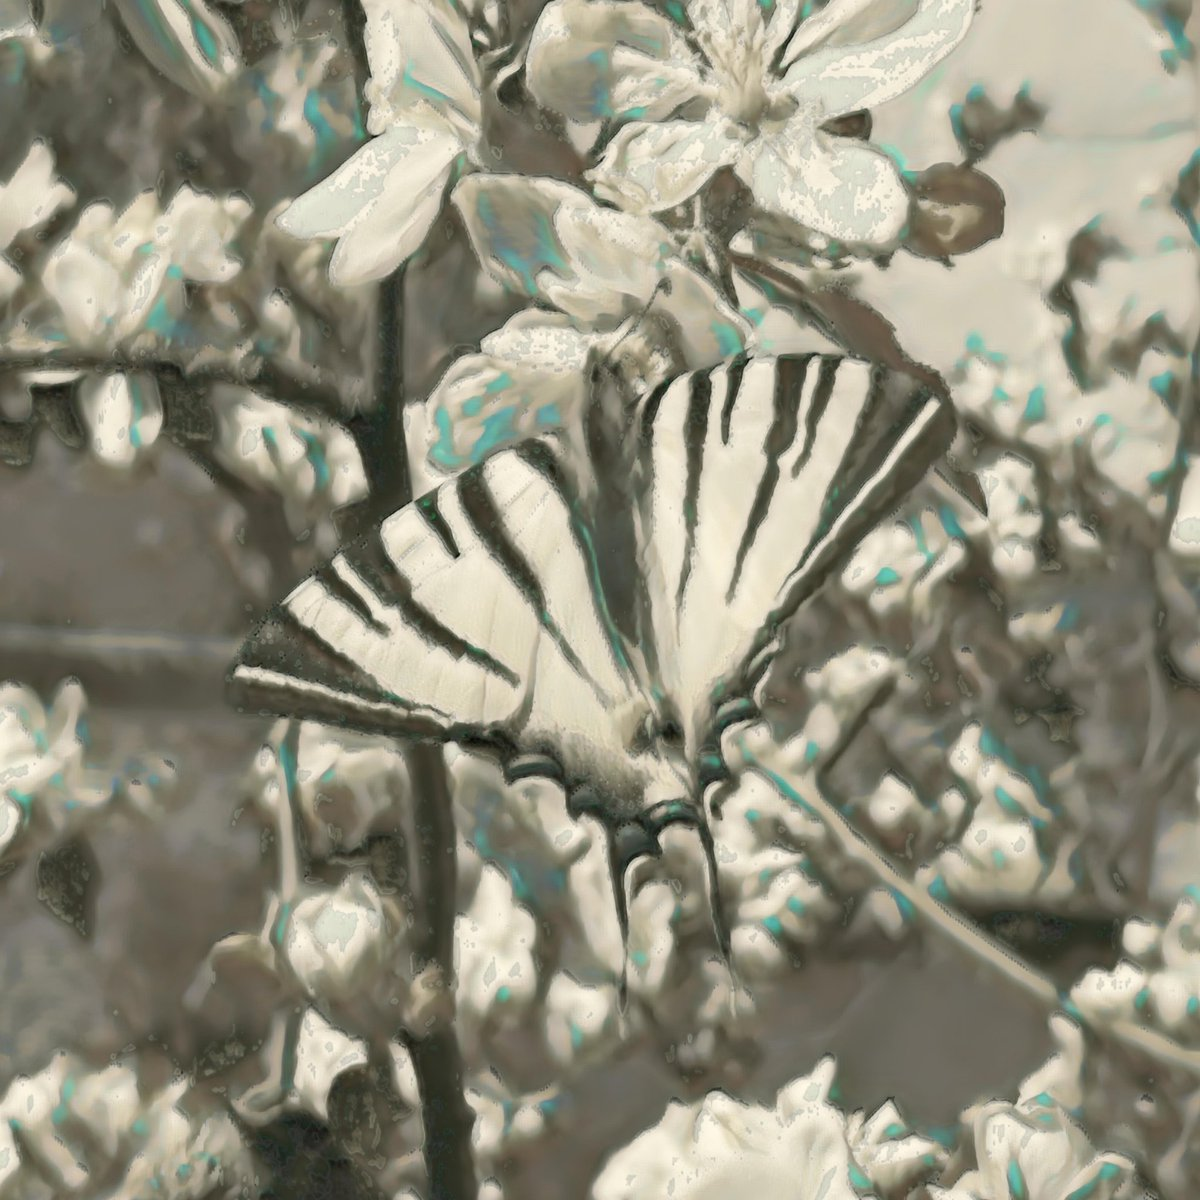 Swallowtail In Cherry Tree IV  Digital Art created via Convolutional Neural Networks and Deep Learning  #art #swallowtail #papilionidae #butterfly #insect #cherry #blossom  #outdoor #animalpic.twitter.com/5i46HSKzni